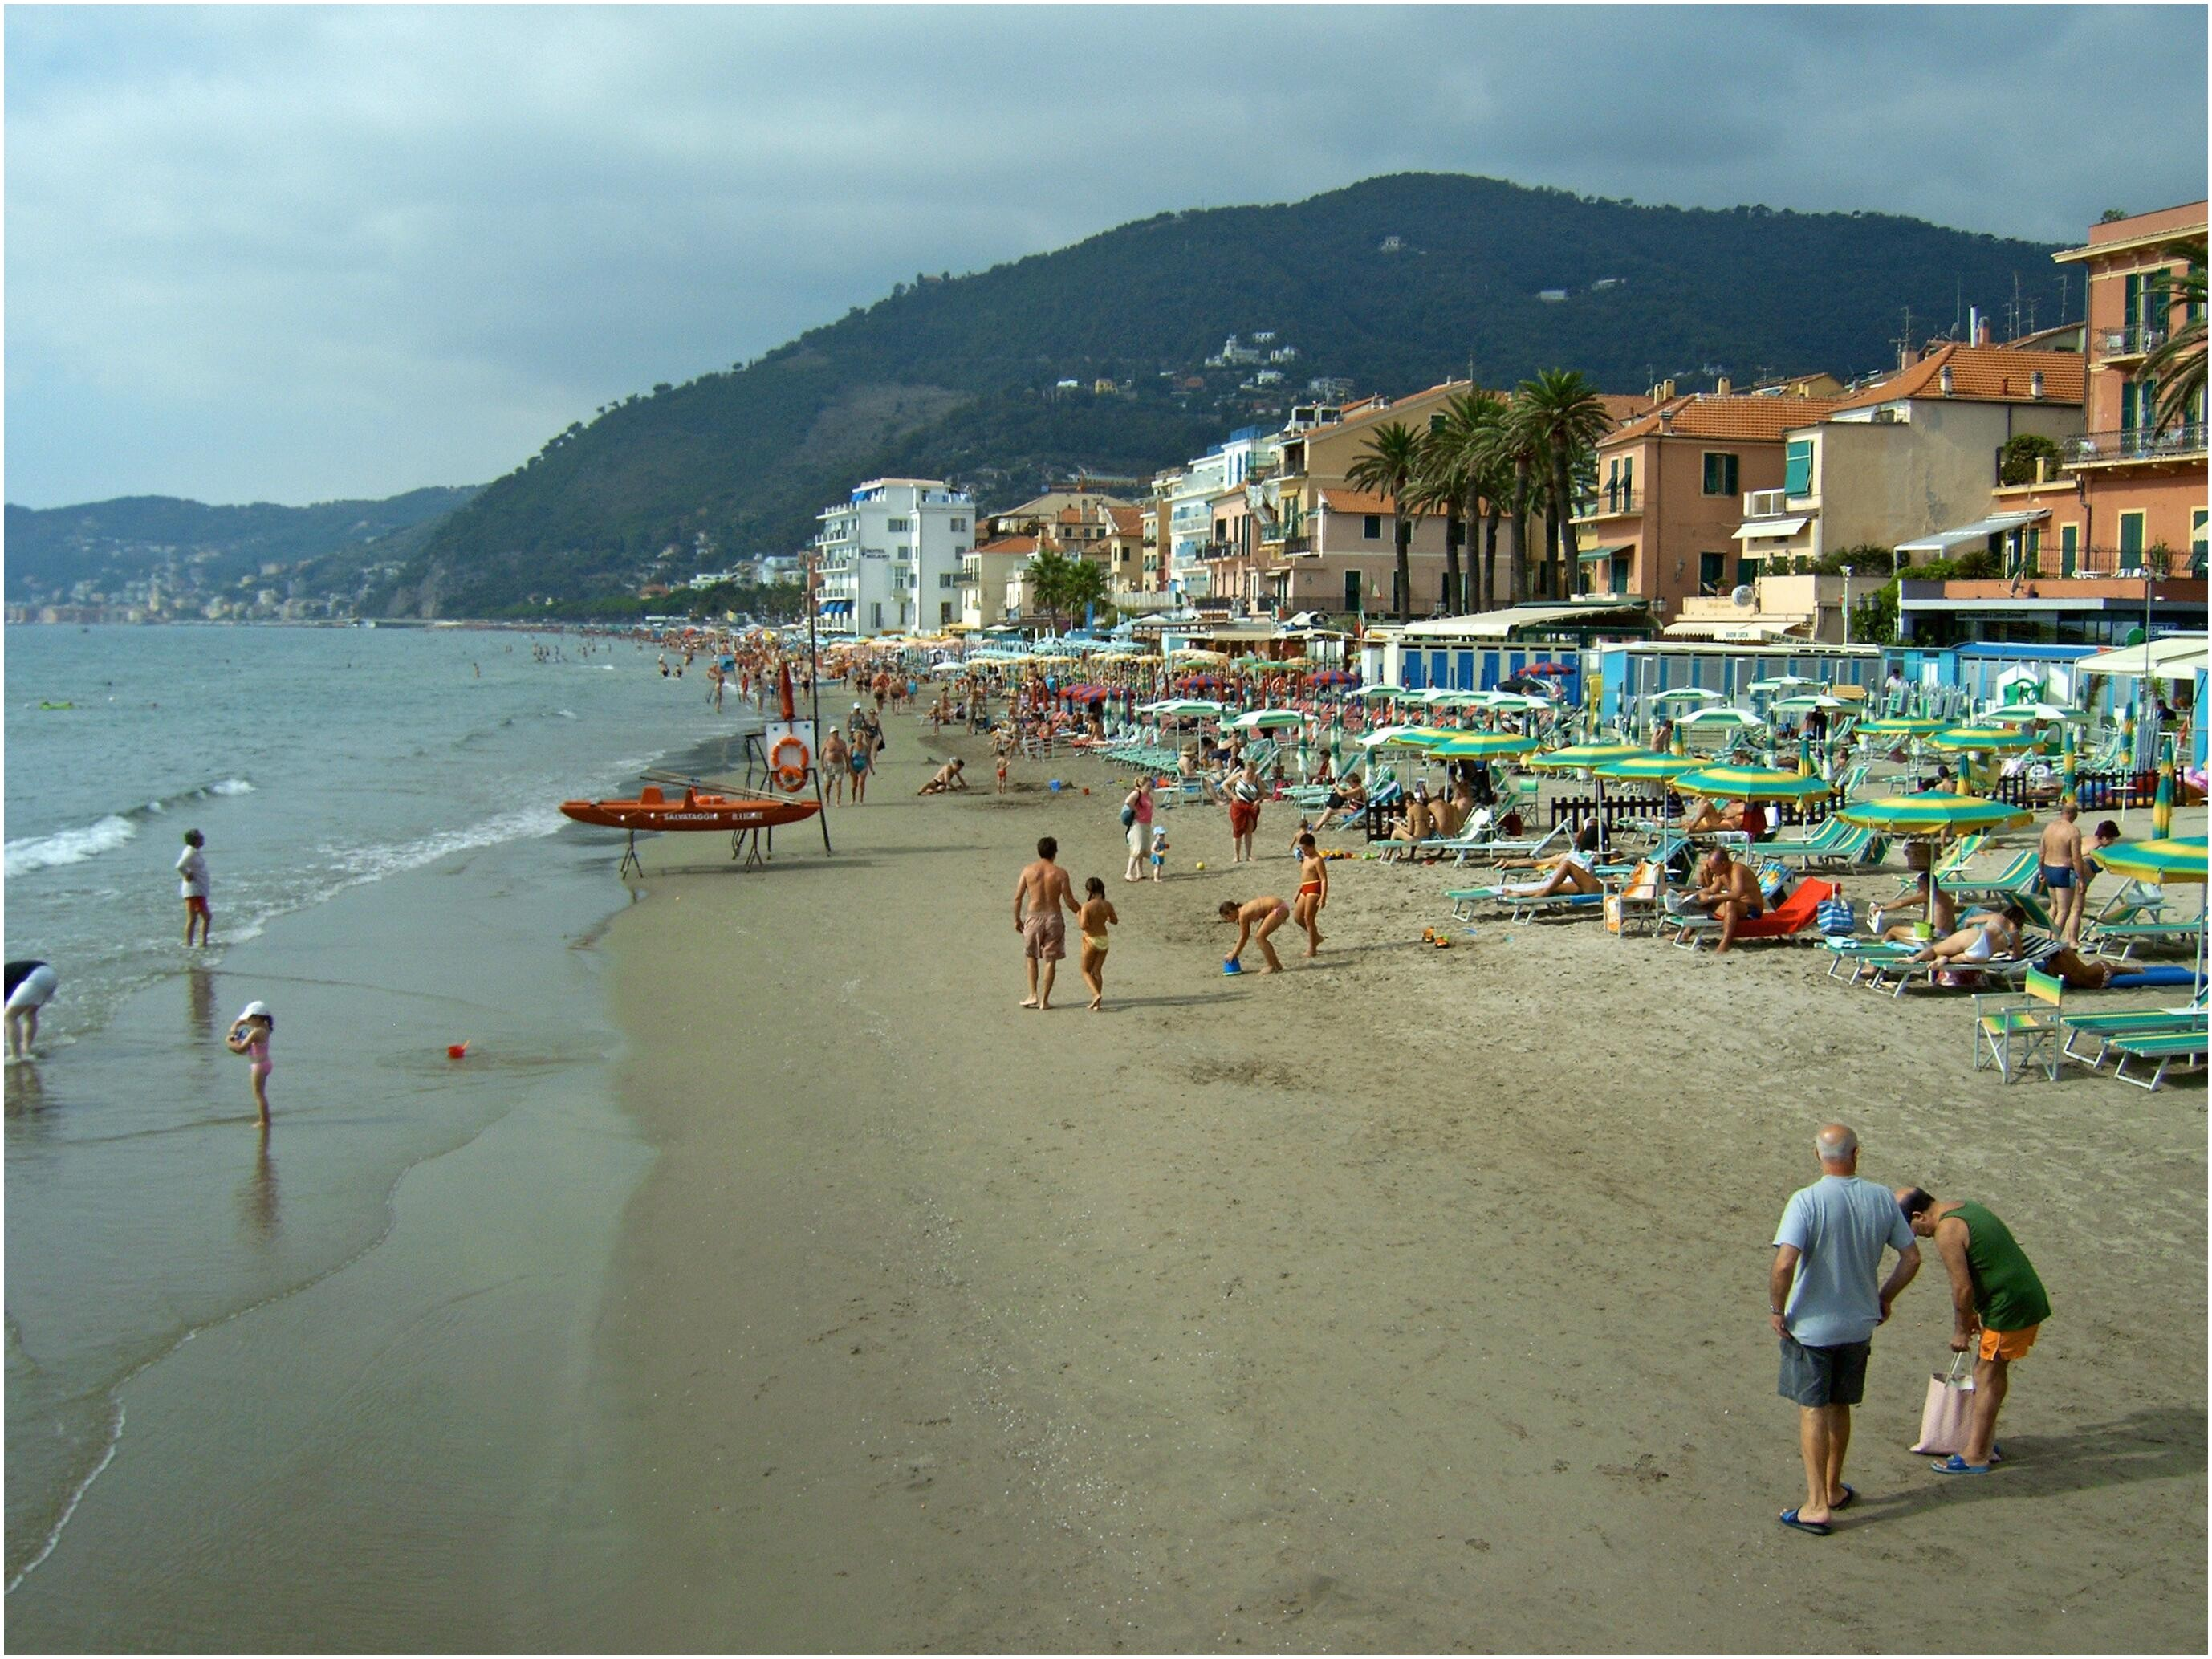 Beach In Alassio Italy Luxury at the Beach In the Resort Of Alassio Italy Wallpapers and Images